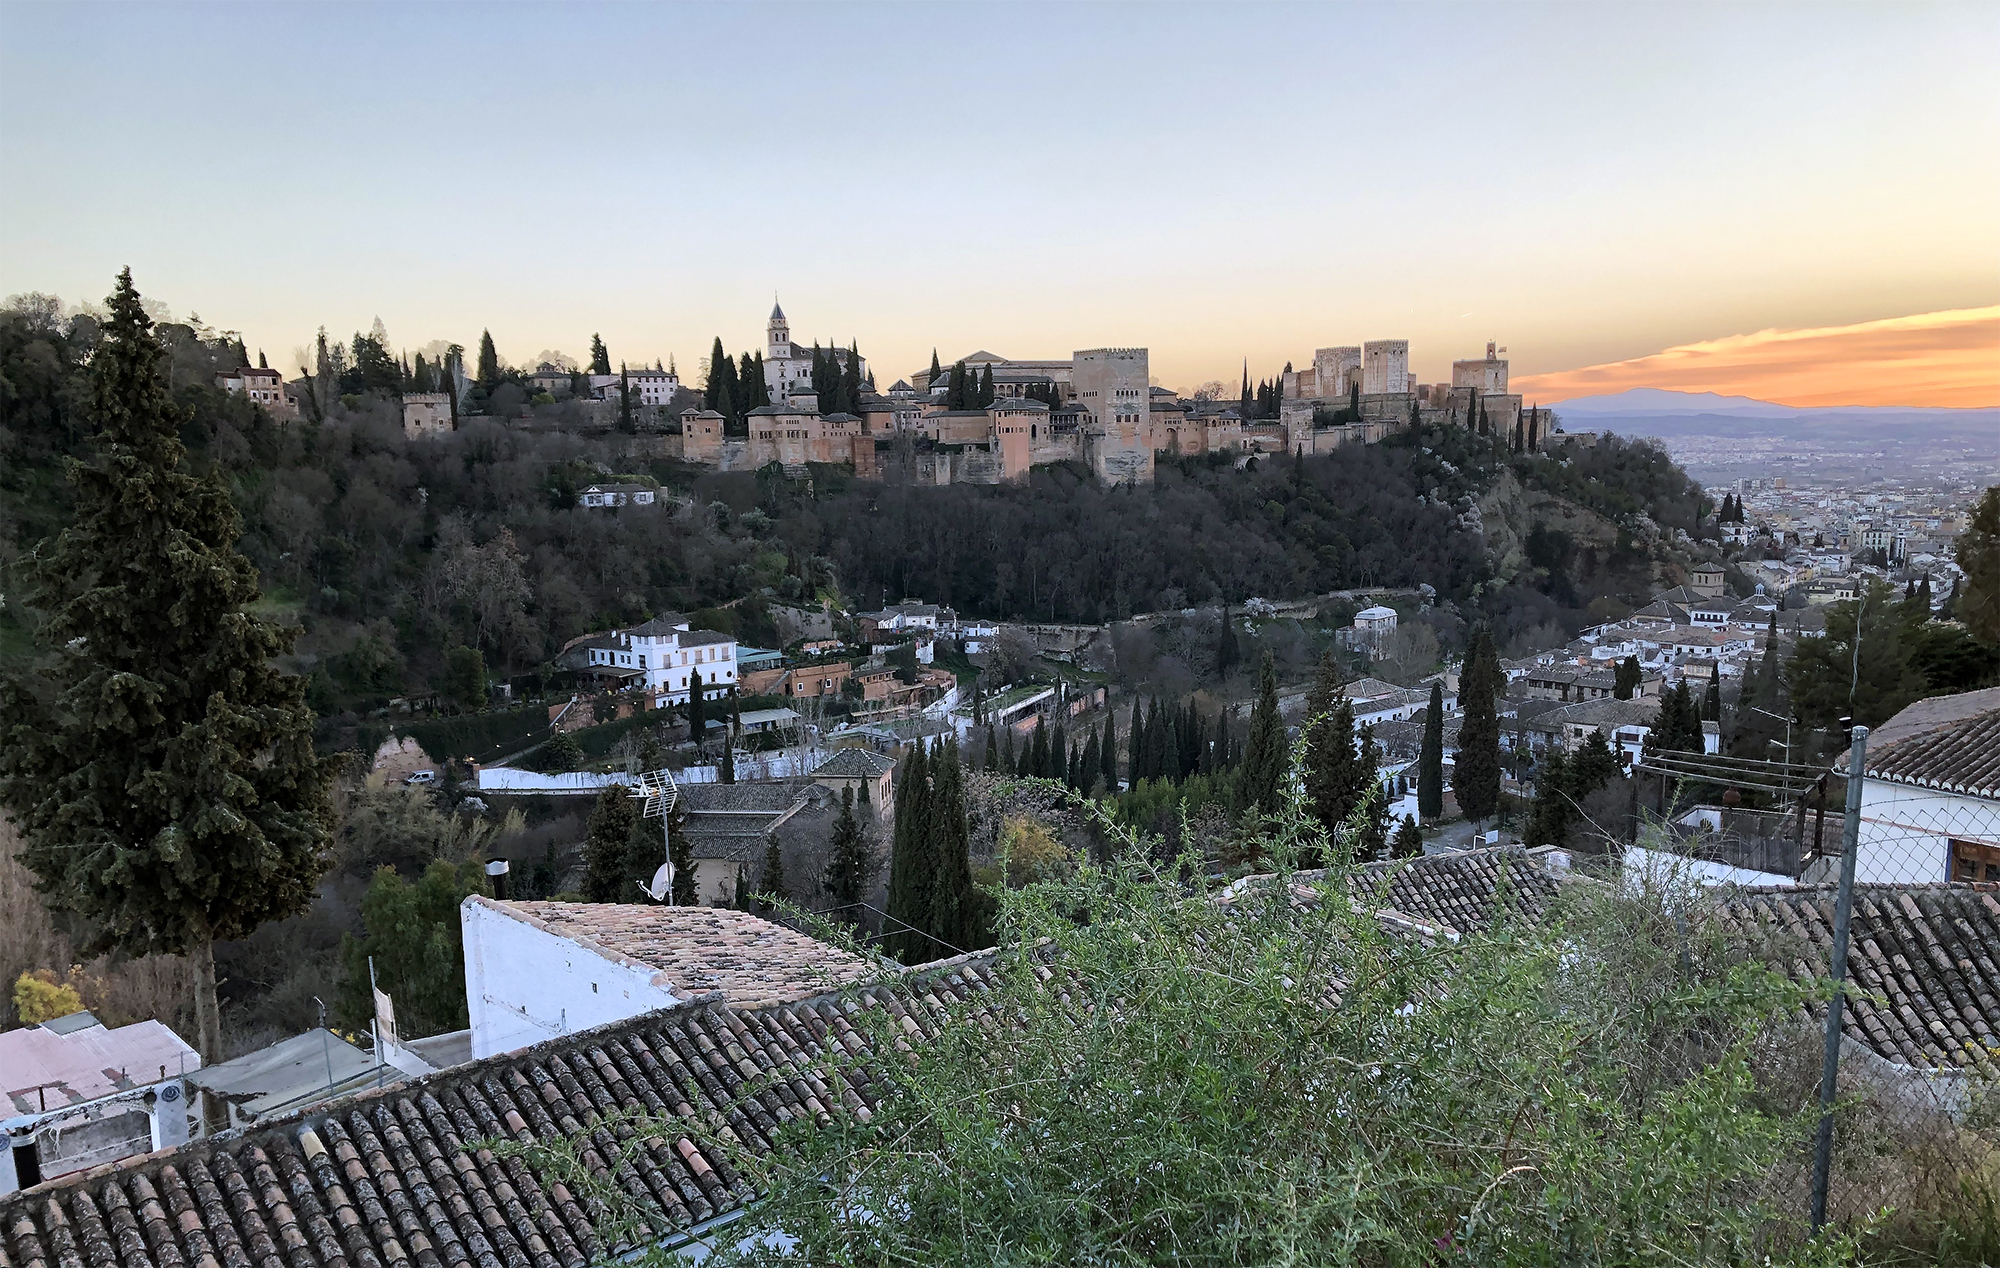 The Alhambra in modern day Granada.